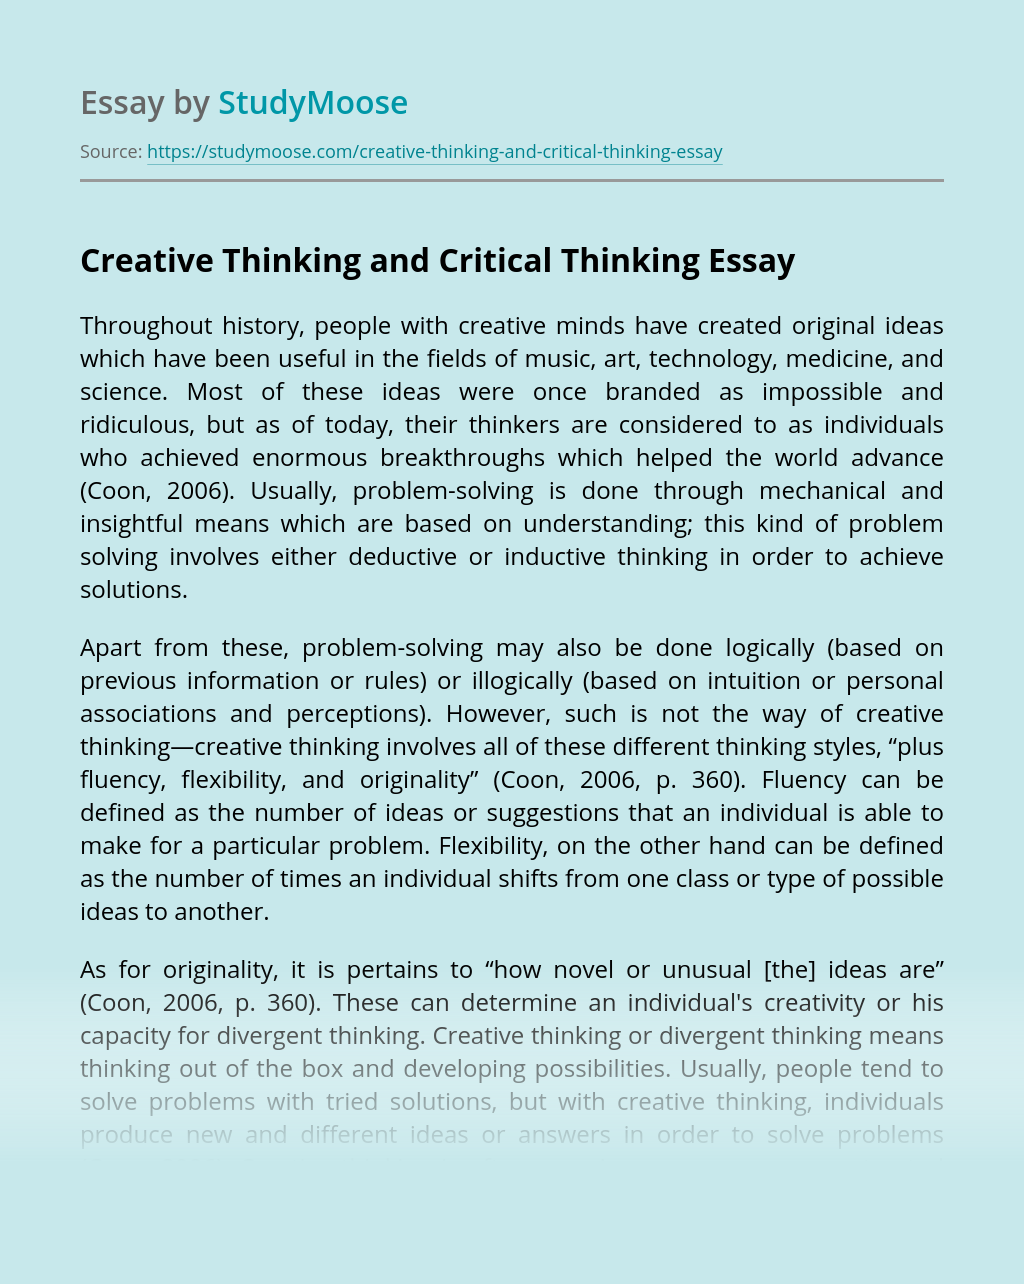 Creative Thinking and Critical Thinking